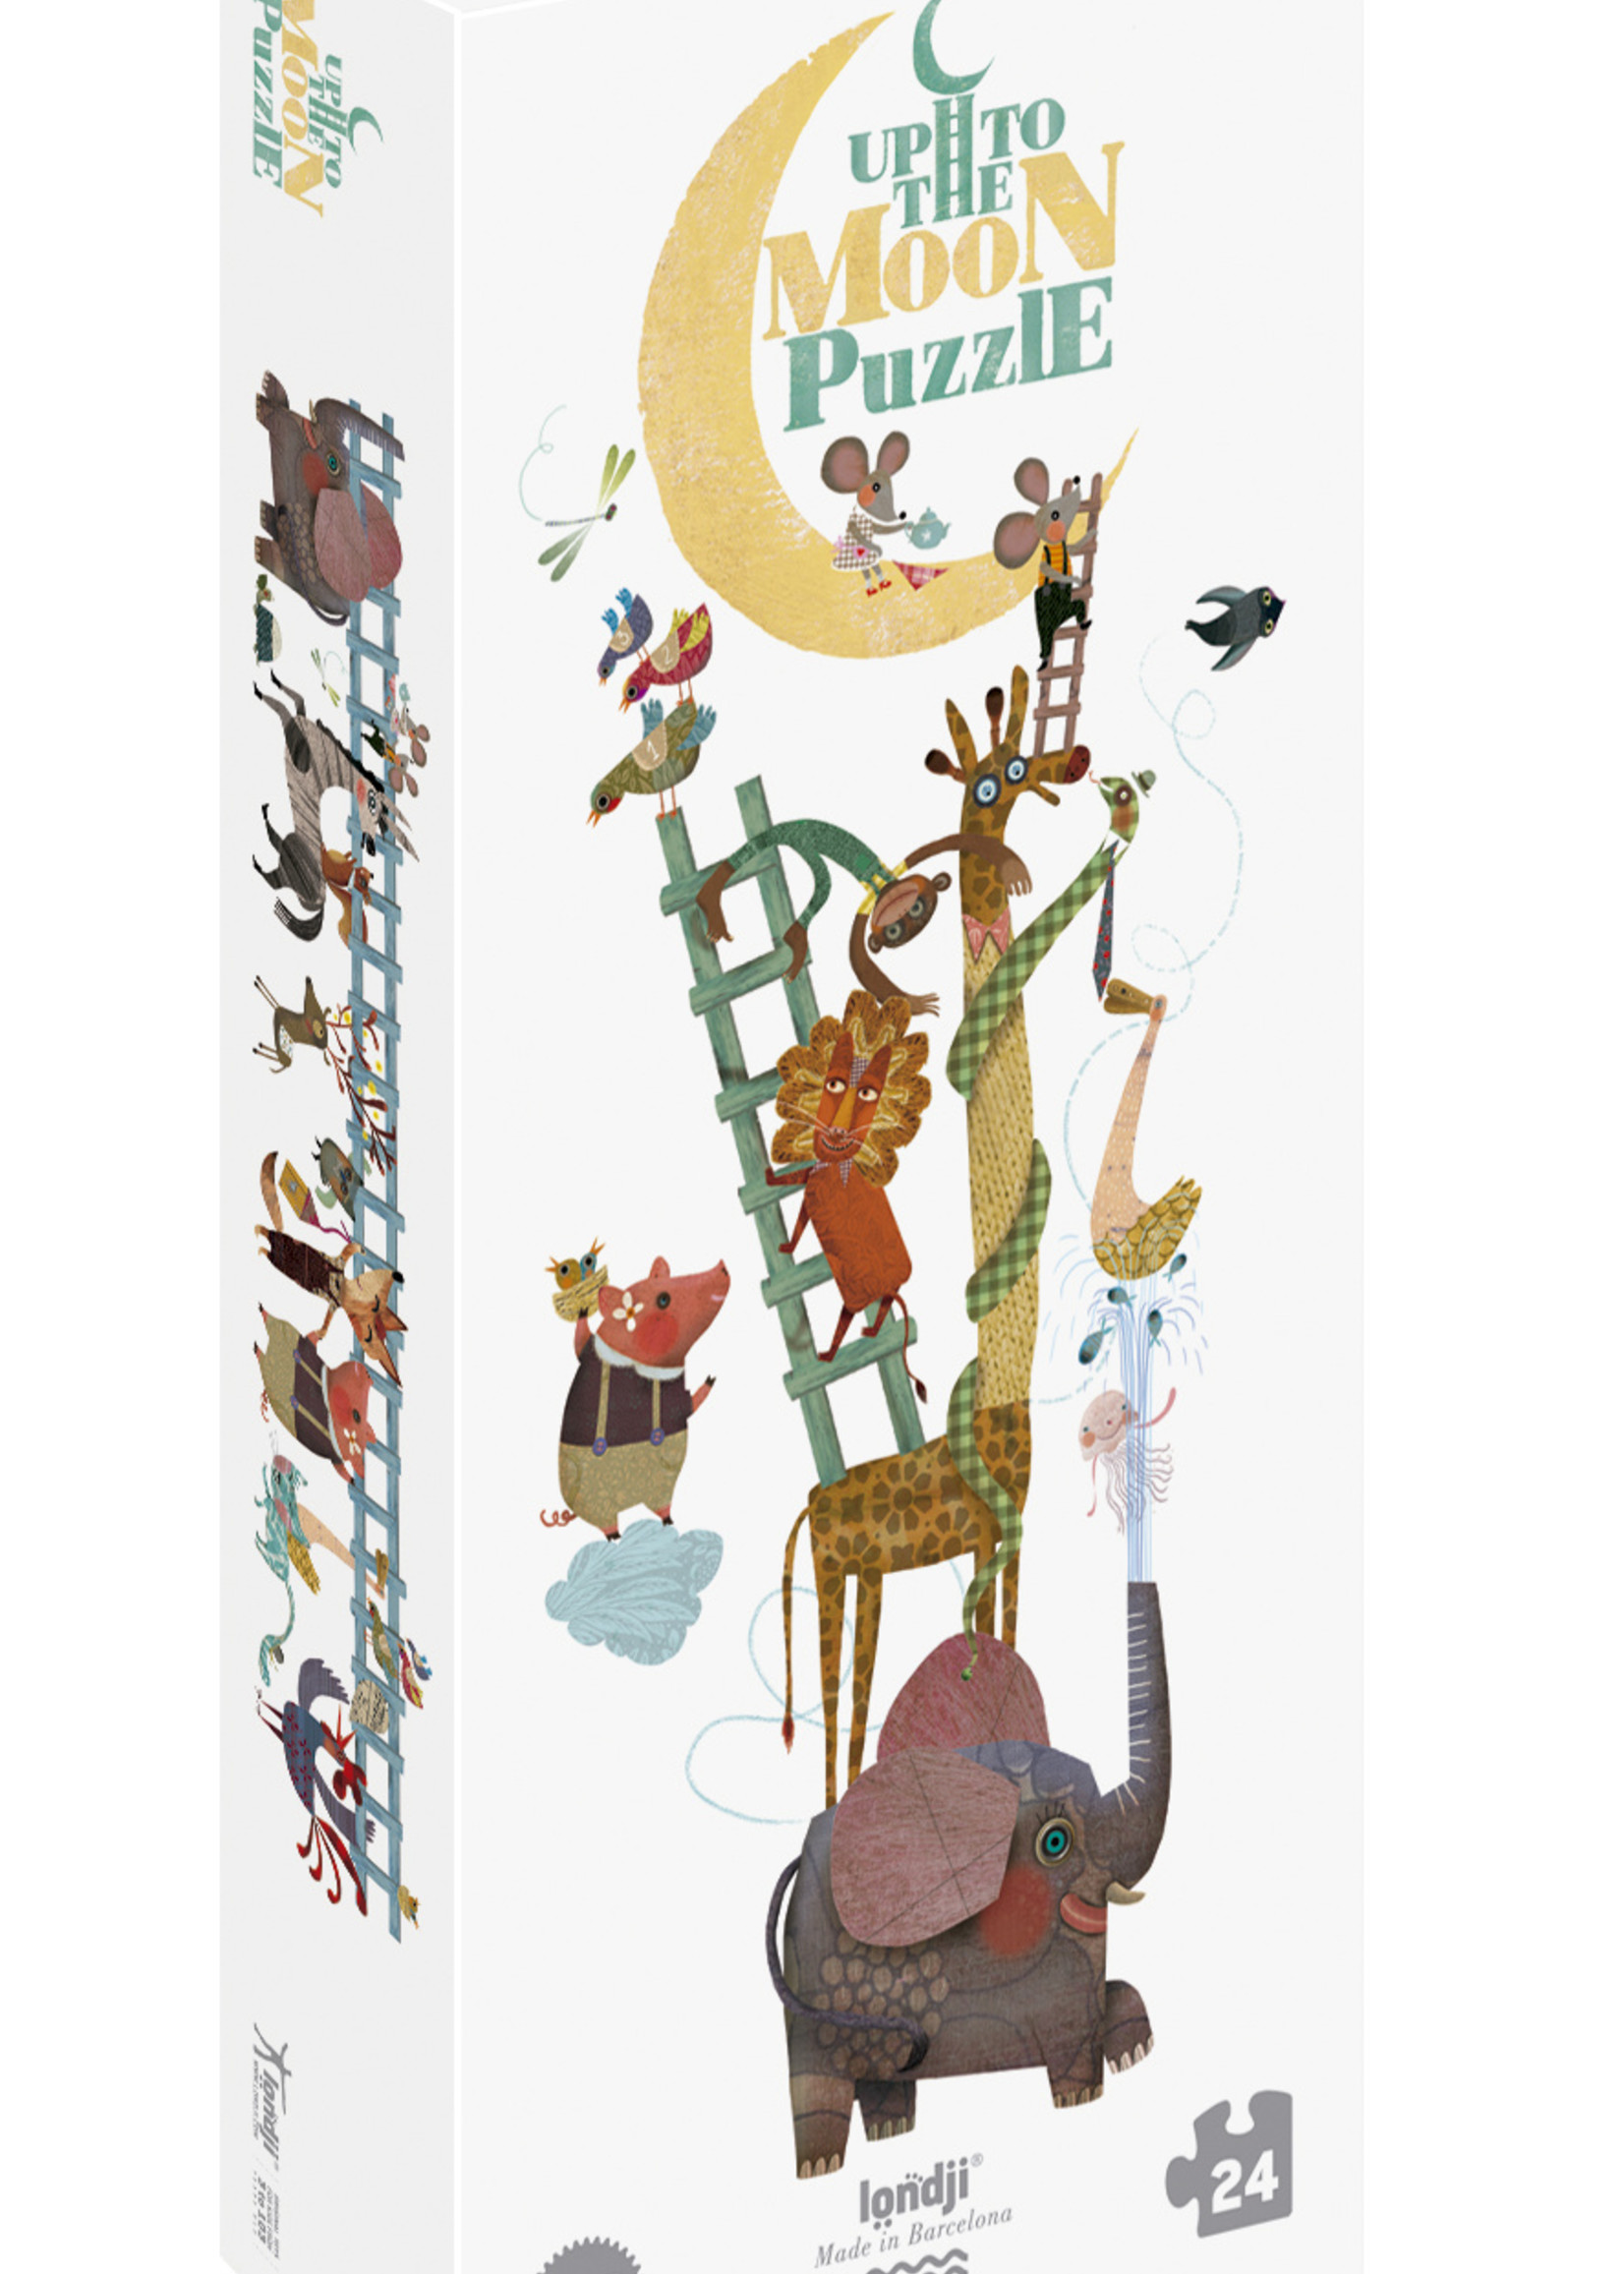 Londji Puzzle - Up To The Moon